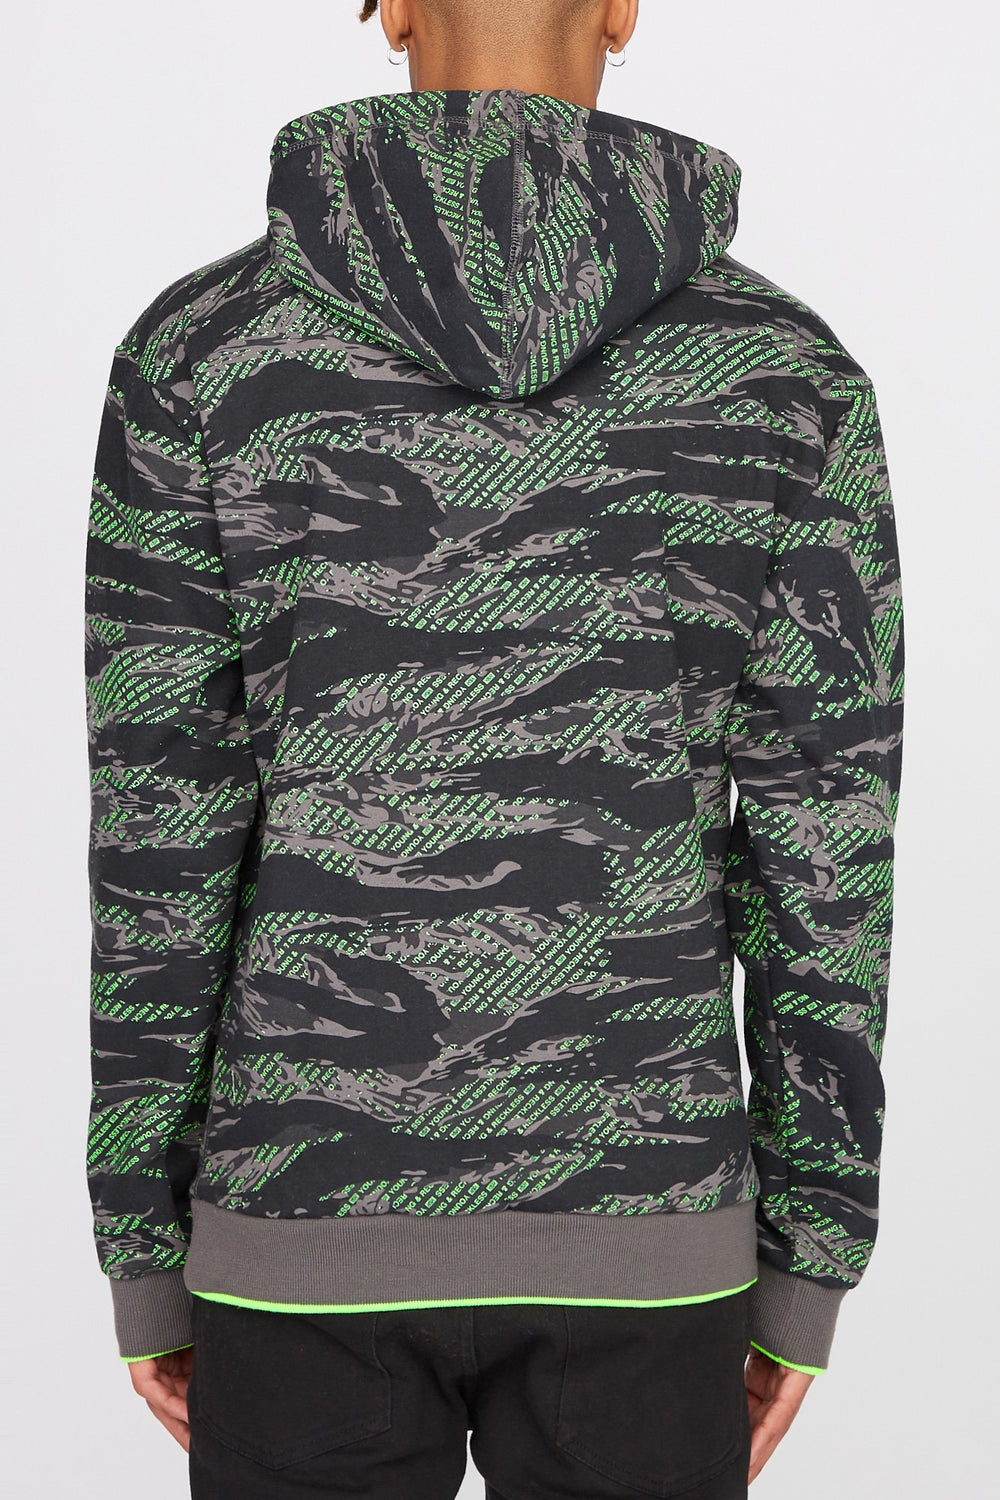 Young & Reckless Mens Tiger Camo & Neon Hoodie Camouflage